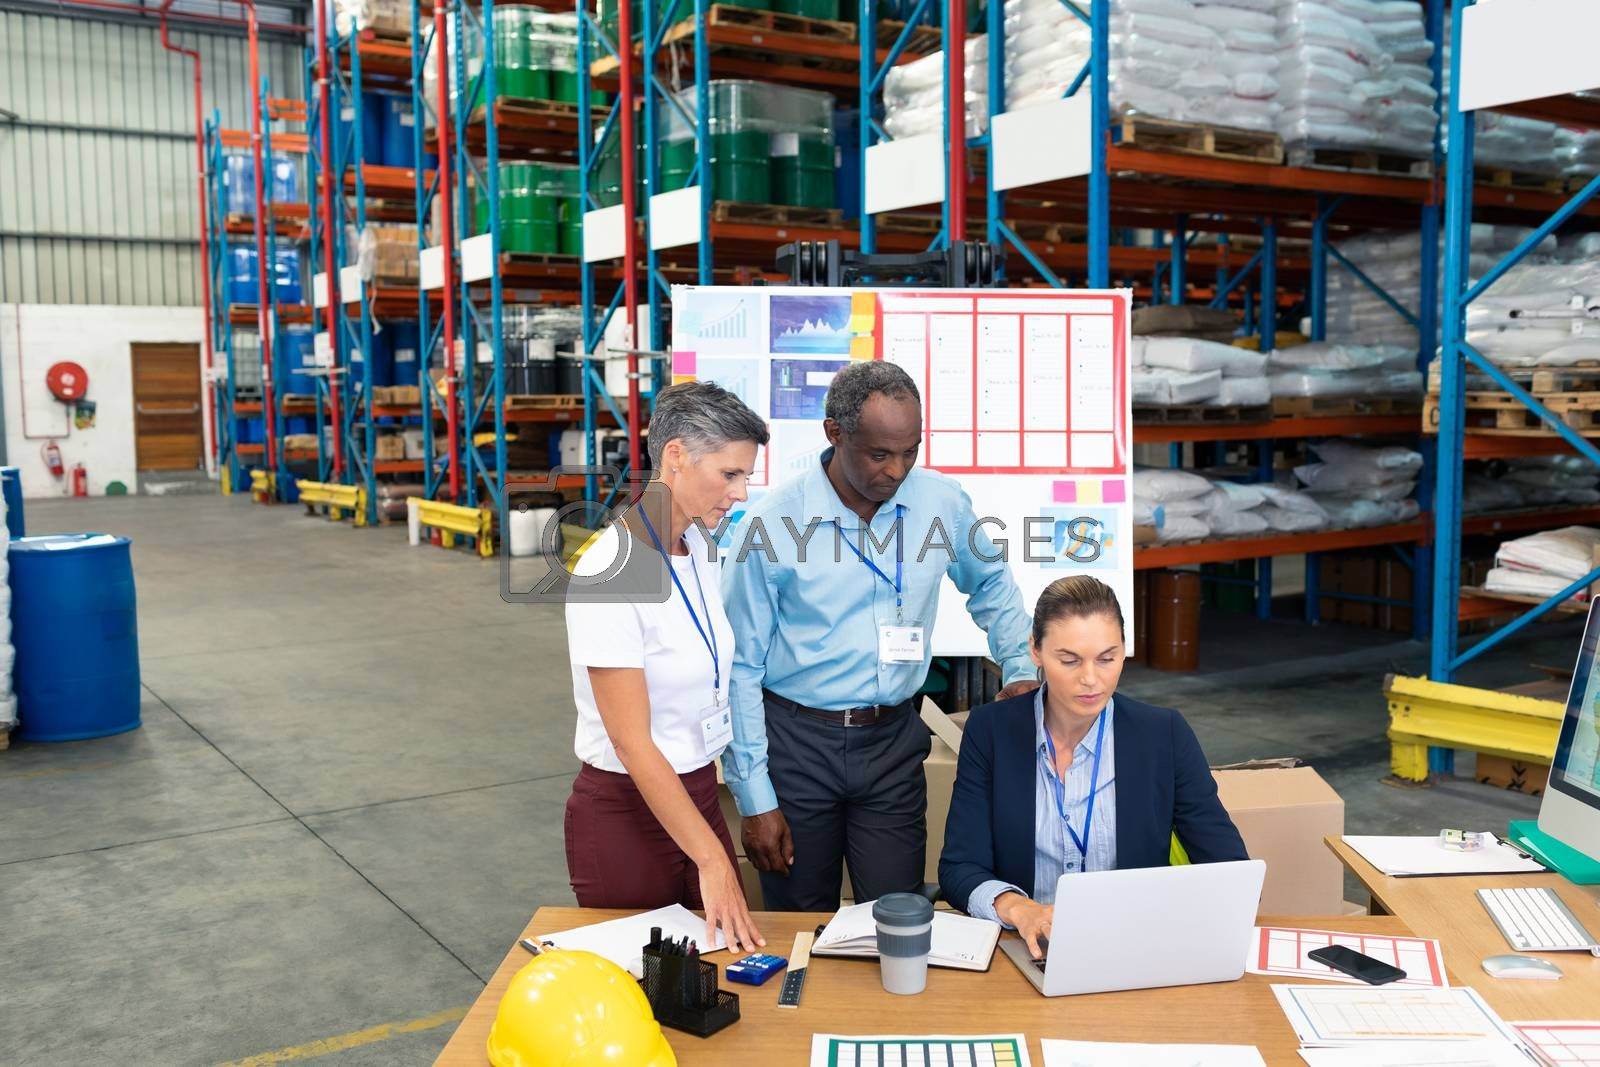 Front view of beautiful Caucasian female manager with her diverse coworkers discussing over laptop at desk in warehouse. This is a freight transportation and distribution warehouse. Industrial and industrial workers concept